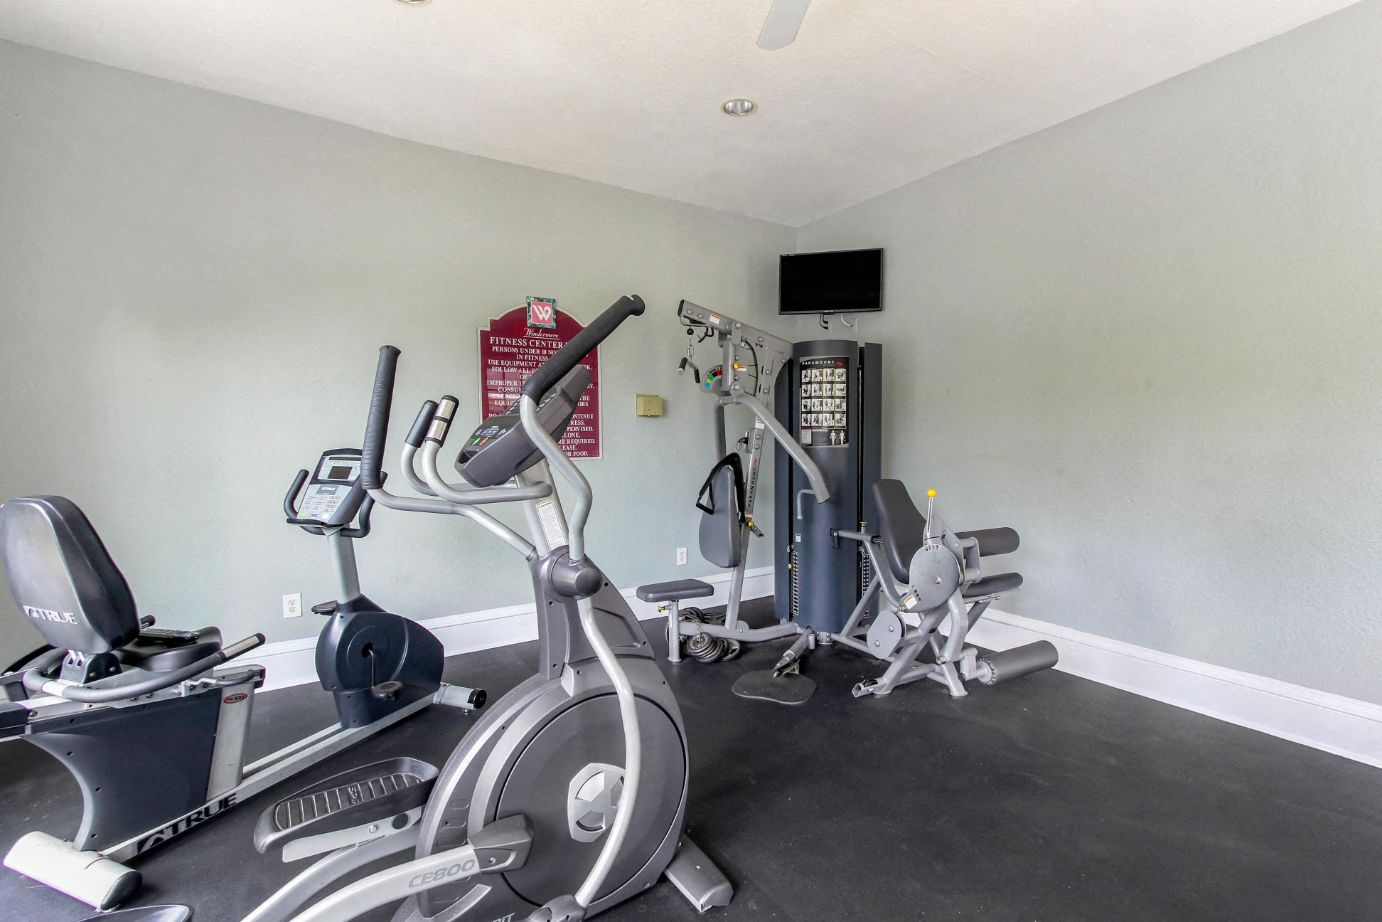 Fitness Center with Exercise Equipment and Mounted TV